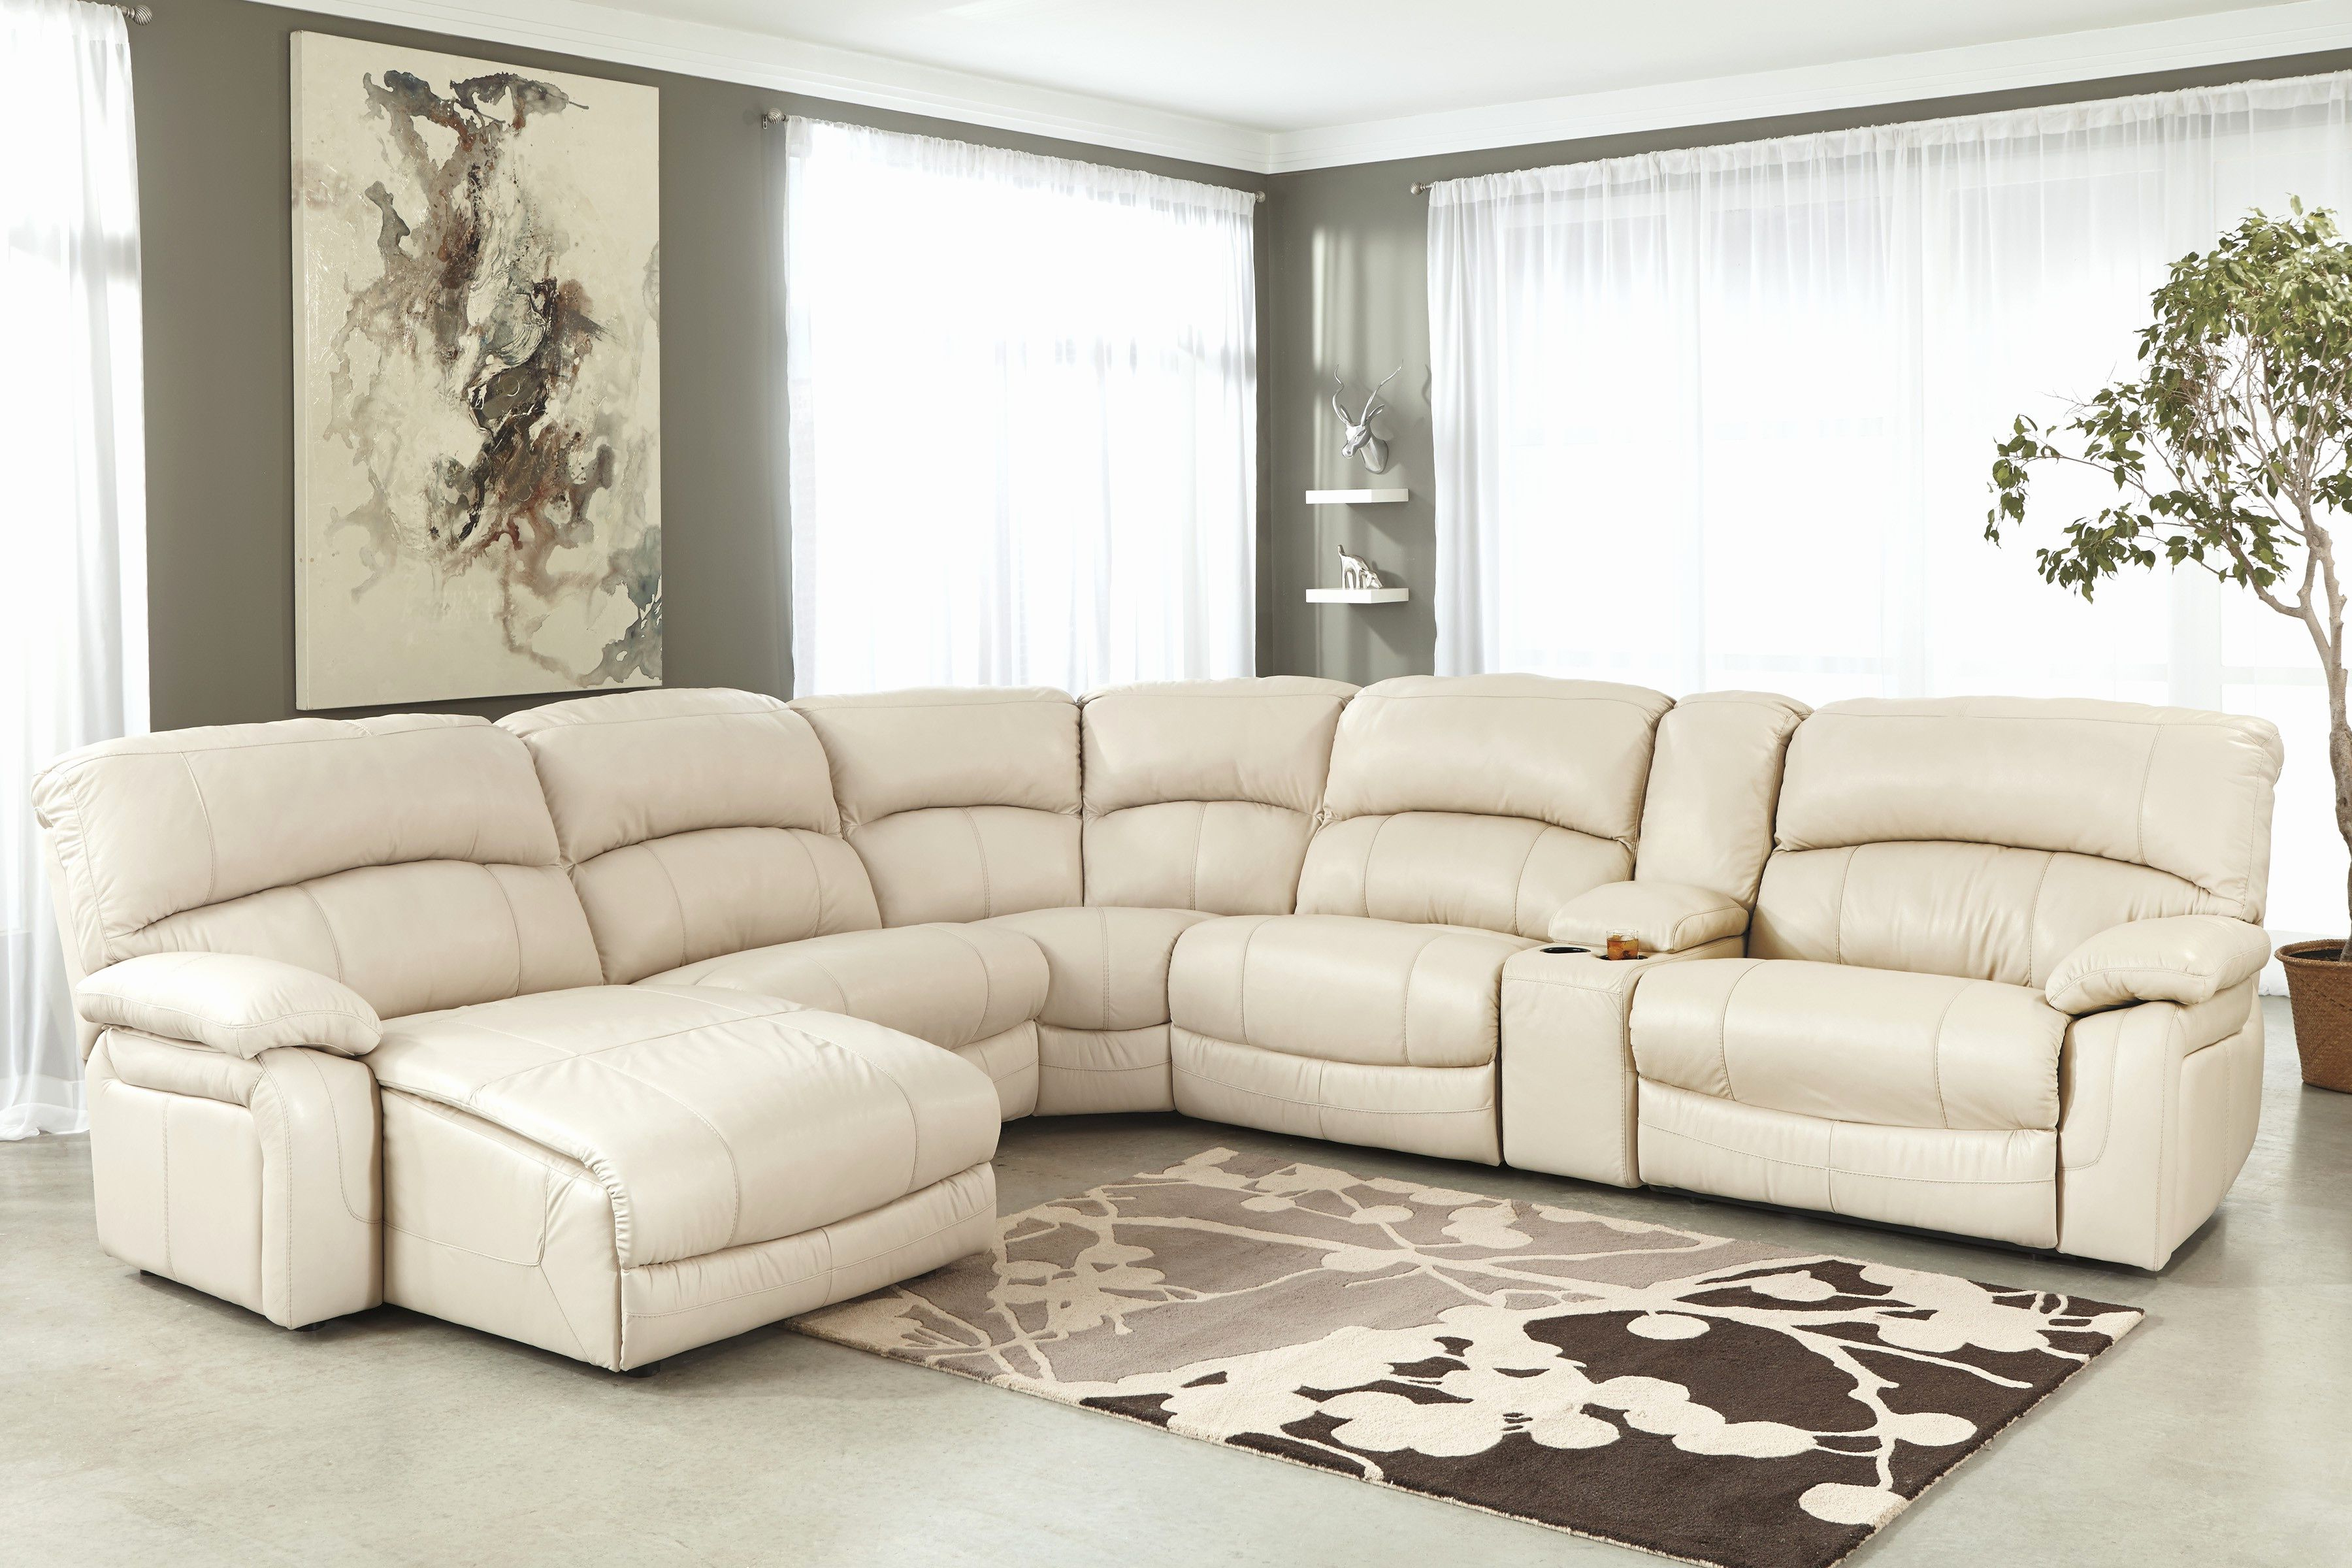 Current New Cream Sectional Sofa Pics Cream Leather Sectional Sofa With Within Marcus Chocolate 6 Piece Sectionals With Power Headrest And Usb (View 6 of 20)